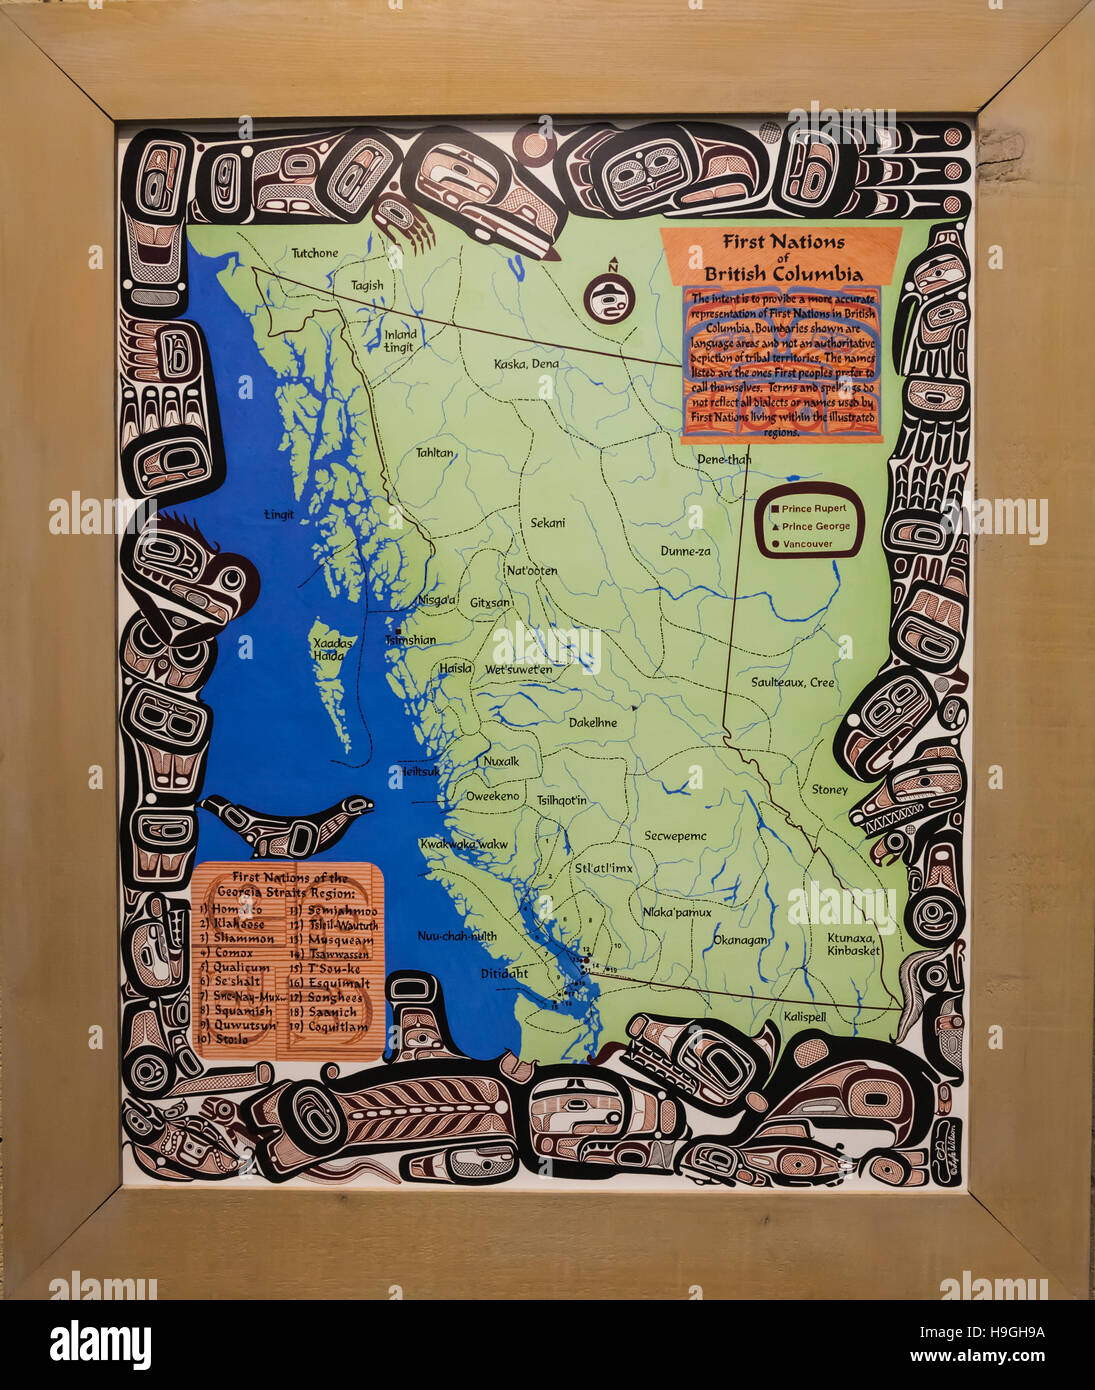 Map of First Nations territory in the Province of British Columbia